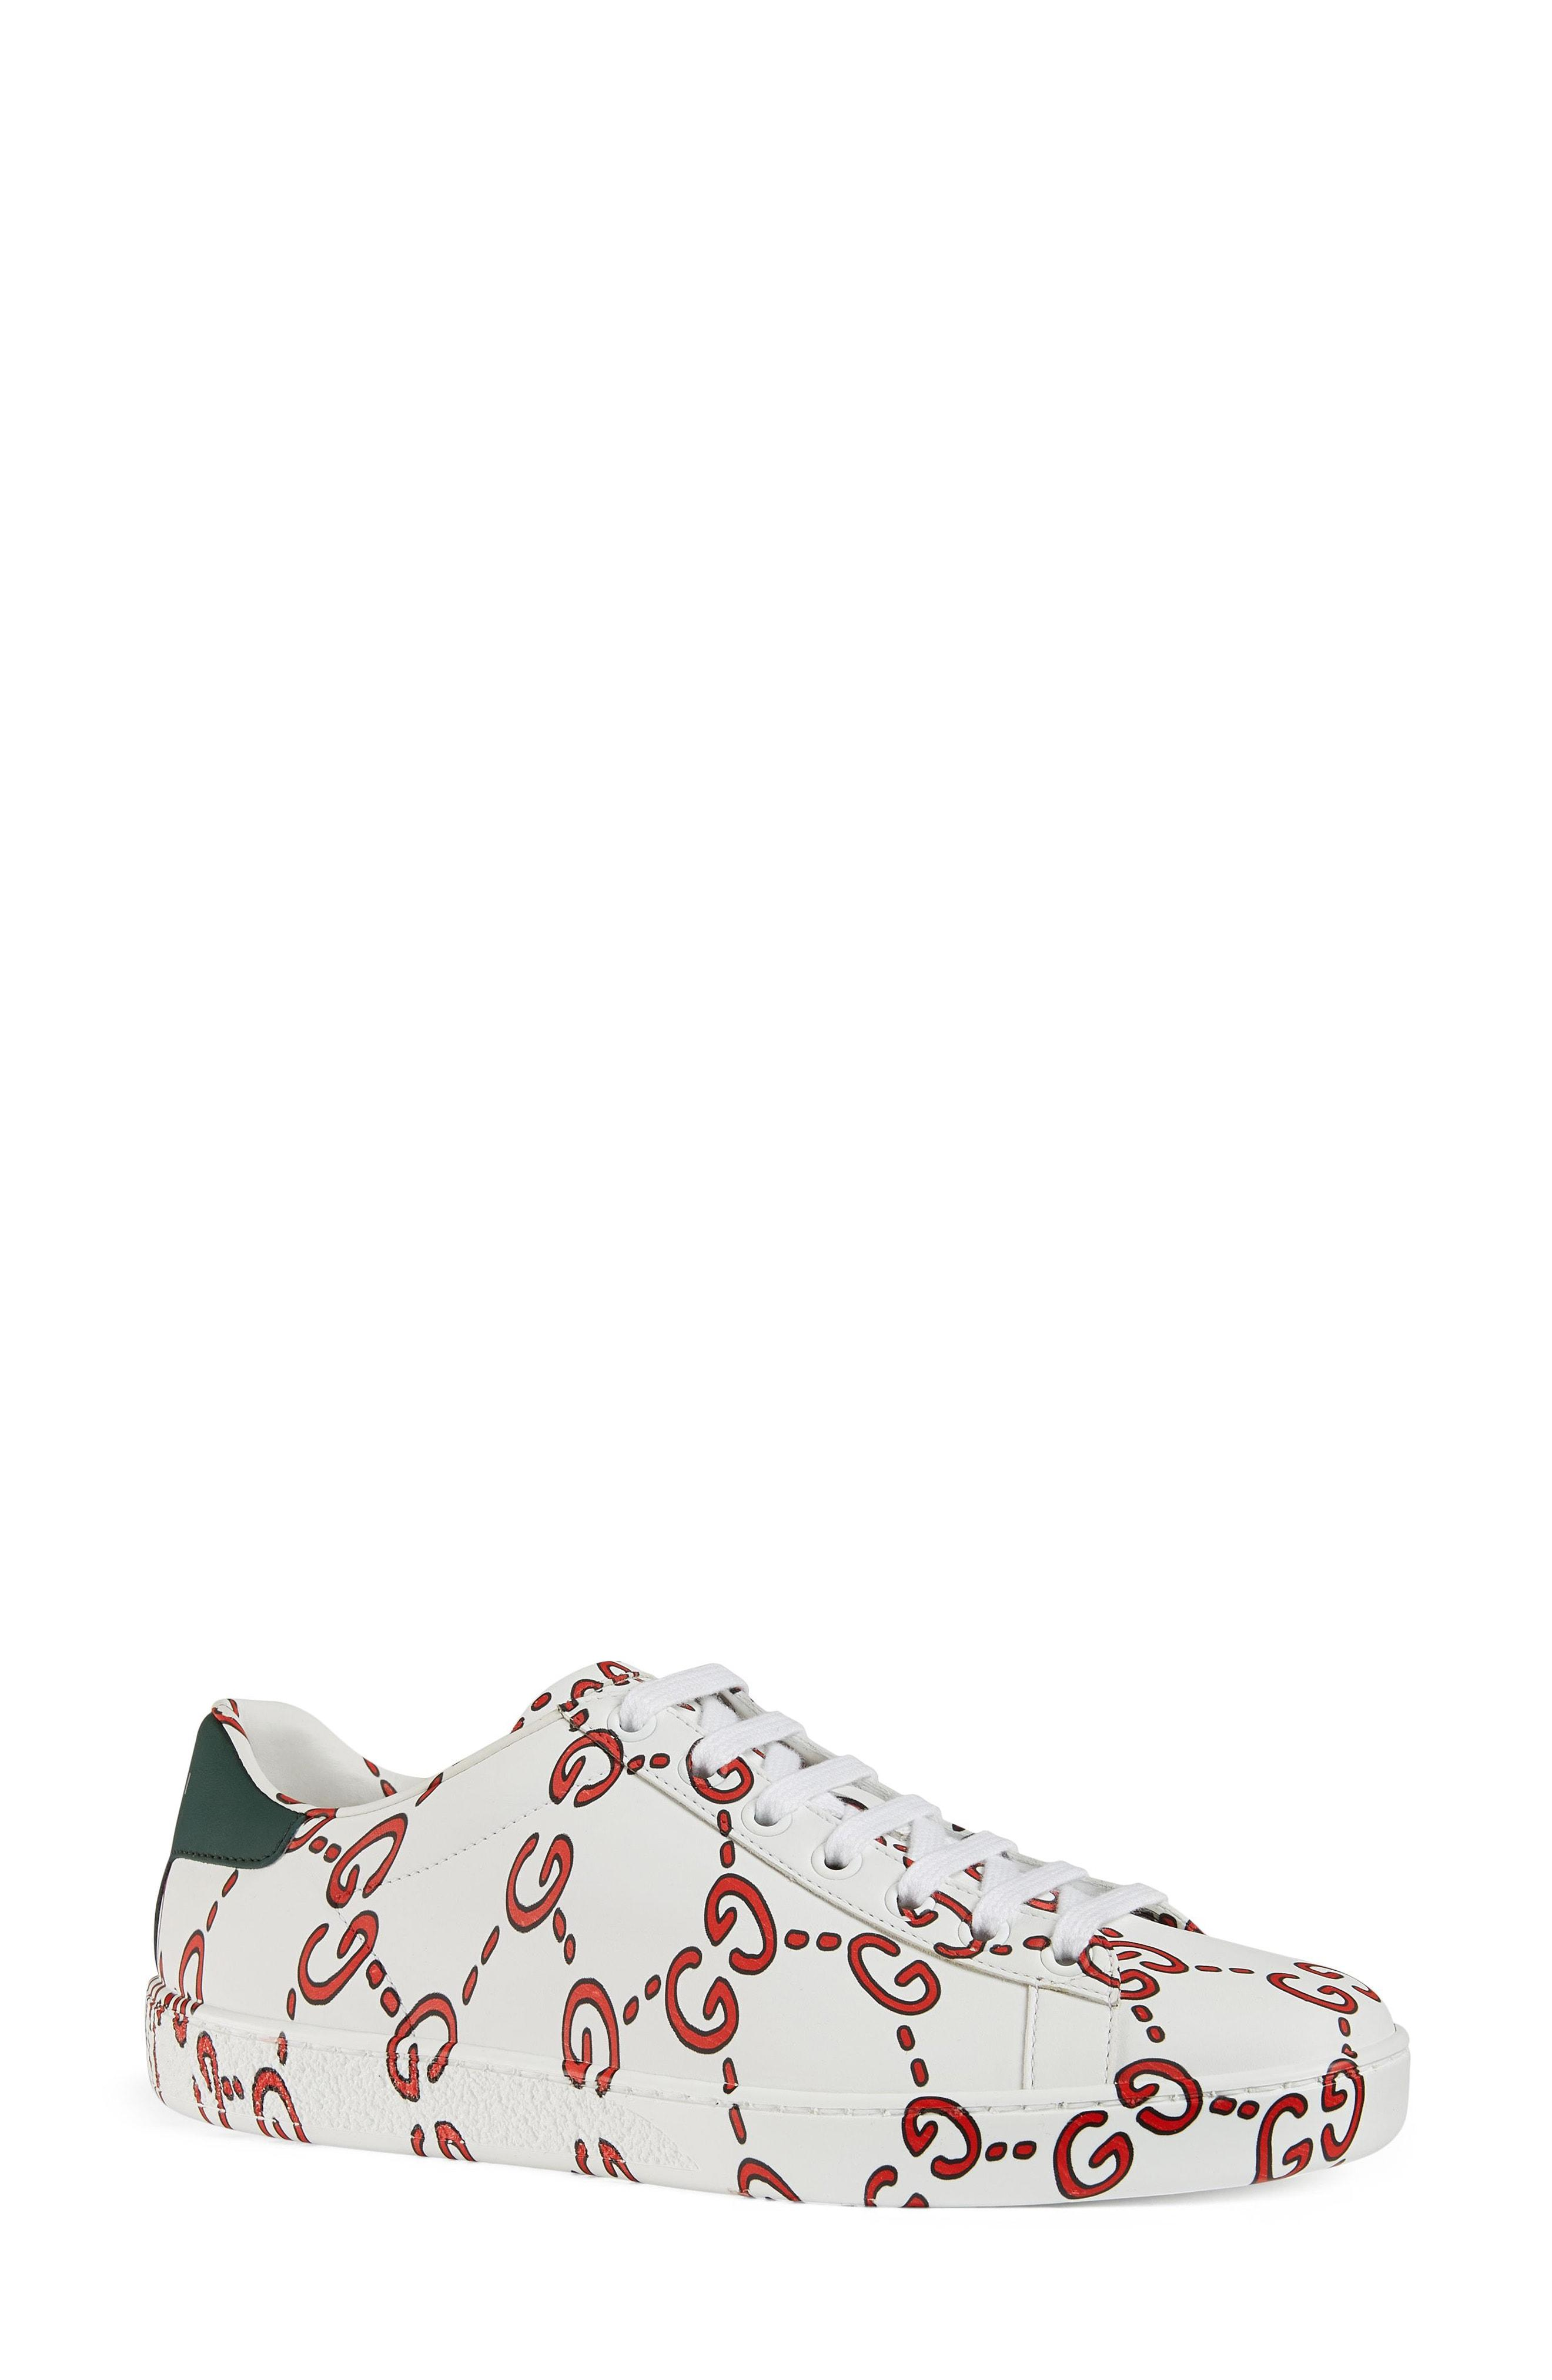 b72aa4e58f8 Gucci Women s New Ace Gg Print Leather Lace Up Sneakers In White ...